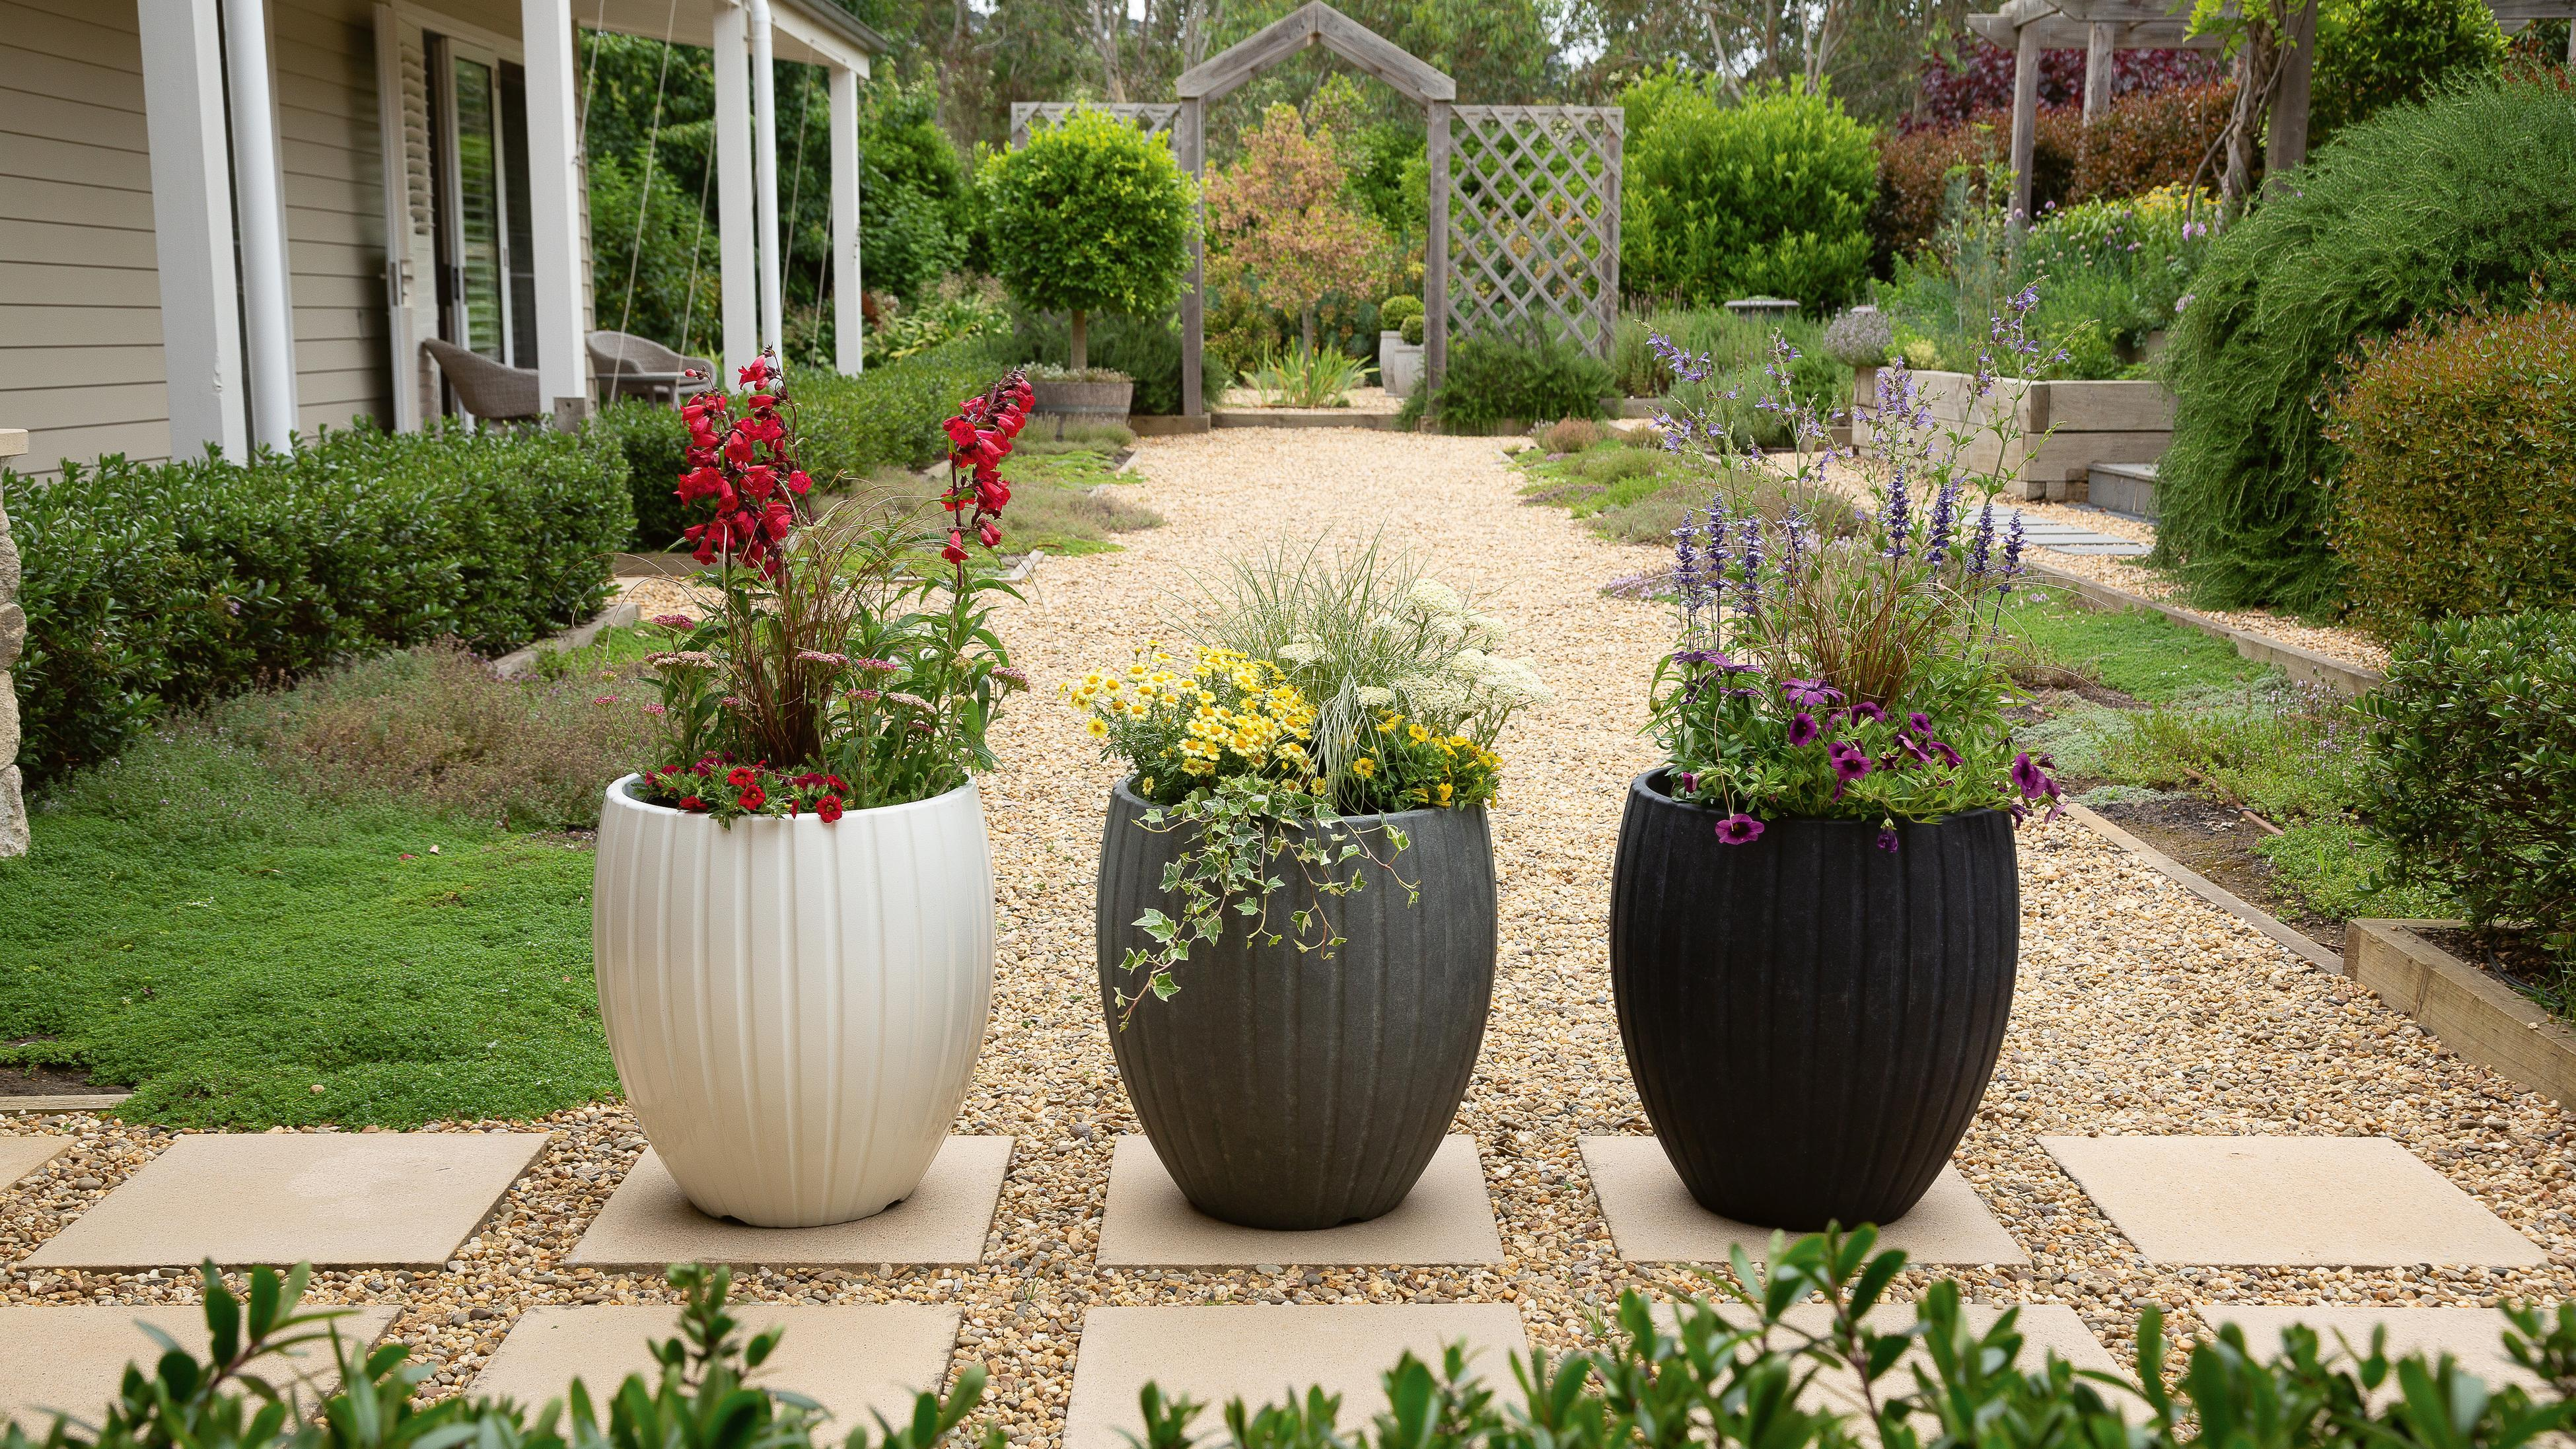 Three planters filled with colourful flowers